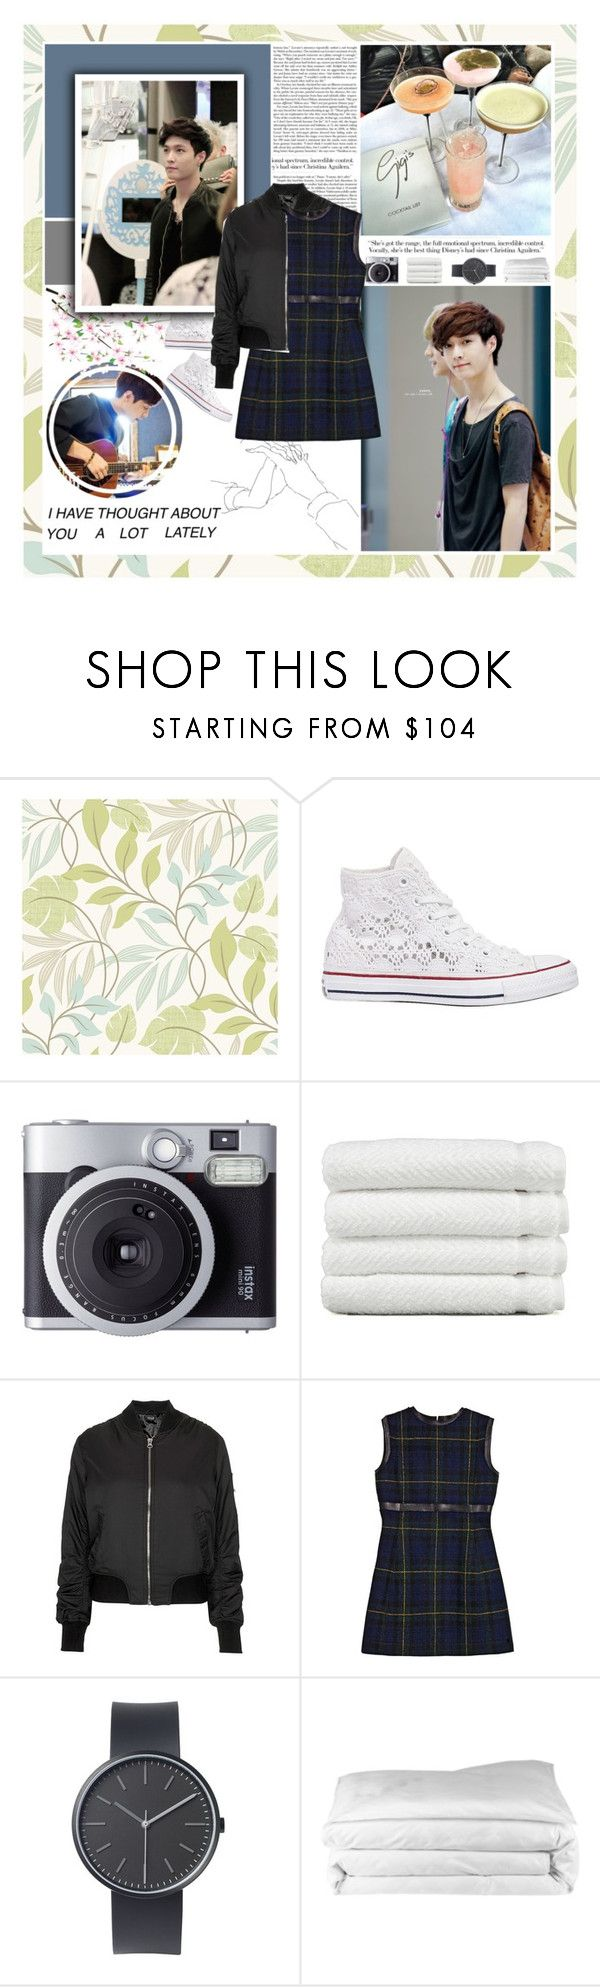 """""""Yixing [ EXO ] ✿ I have thought about you a lot lately ✿"""" by julia-ngo ❤ liked on Polyvore featuring Beacon House, Converse, Fujifilm, Linum Home Textiles, Topshop, CÉLINE, Uniform Wares and Frette"""